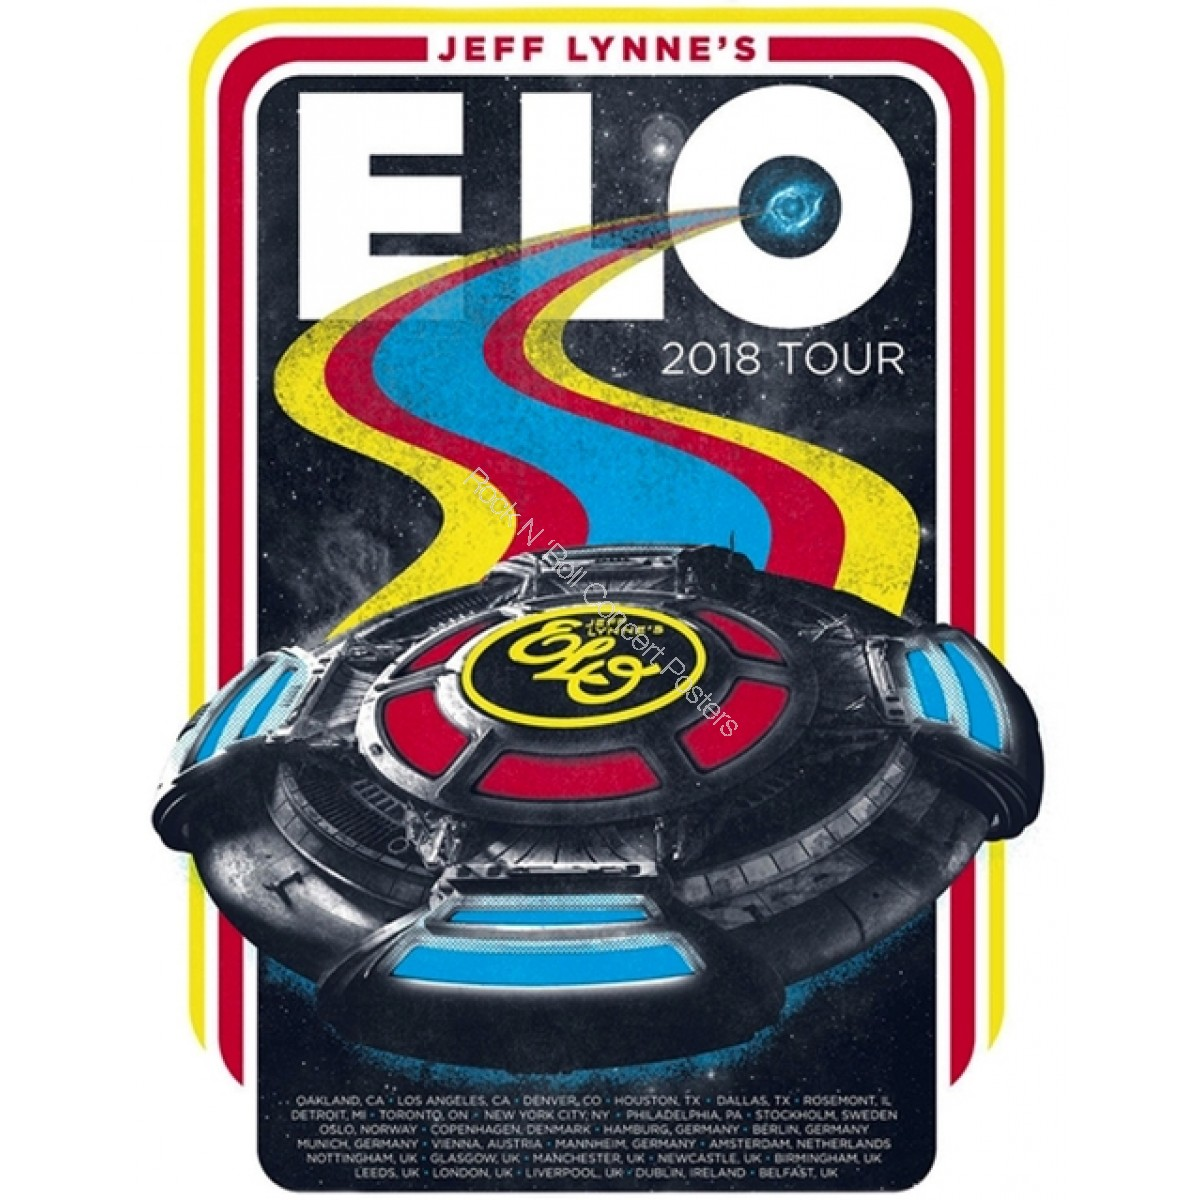 Jeff Lynne's Electric Light Orchestra 2018 World Tour Poster Limited Edition Hand Numbered